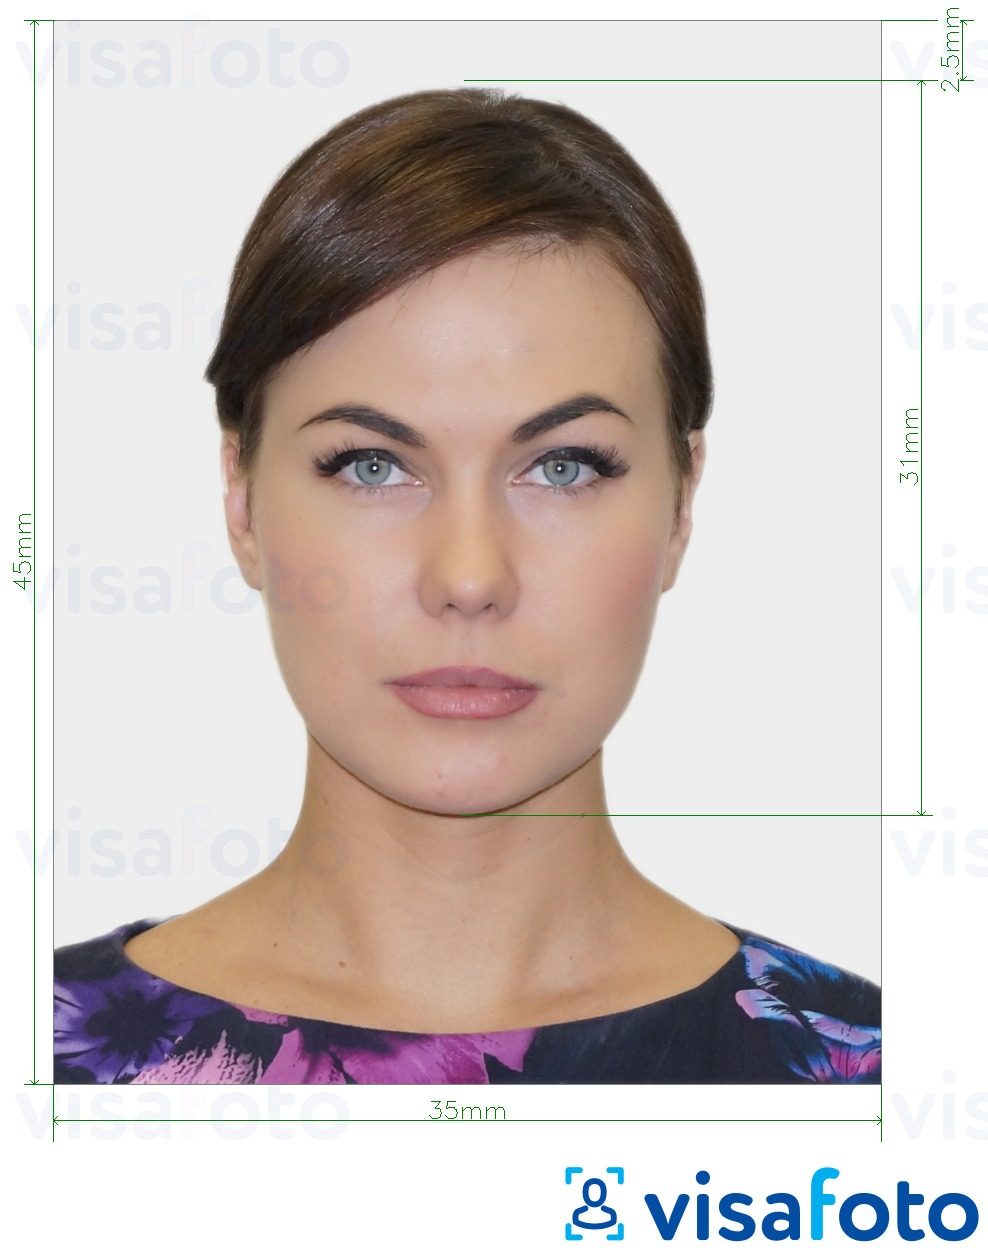 Example of photo for Belgium Visa with exact size specification